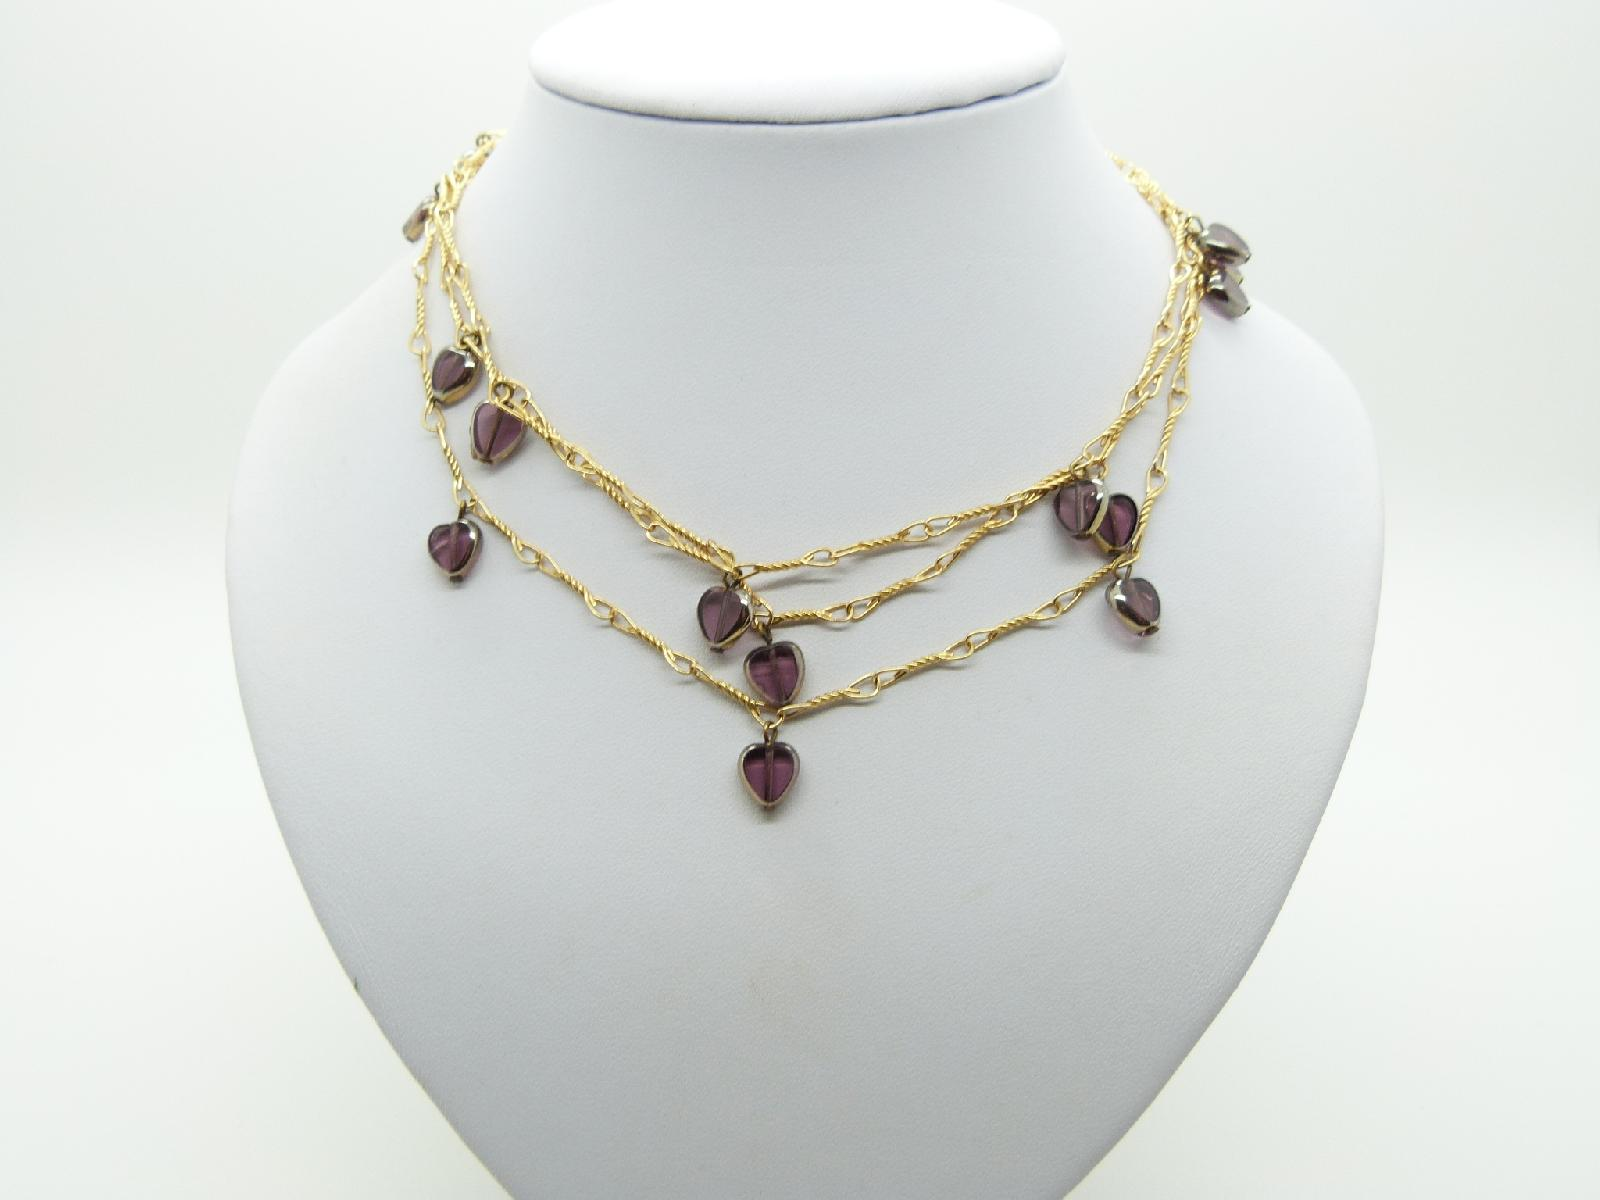 Vintage 80s Long Gold Twist Necklace with Cute Purple Glass Heart Charms